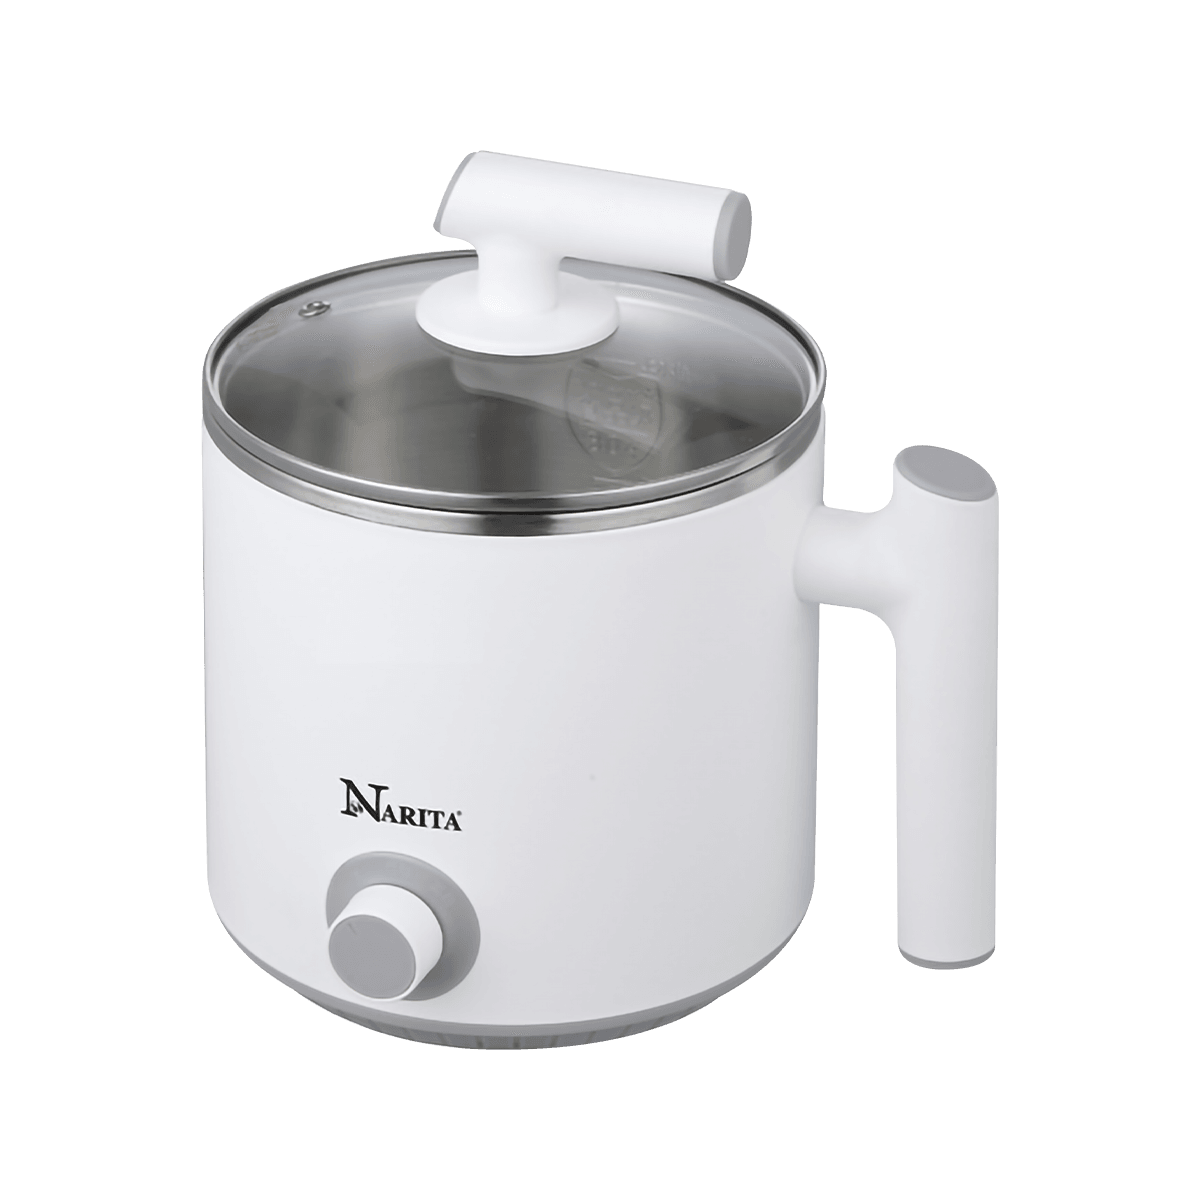 Yamibuy.com:Customer reviews:【New】Narita Electric S.S Hot Pot Kettle 1.2 L